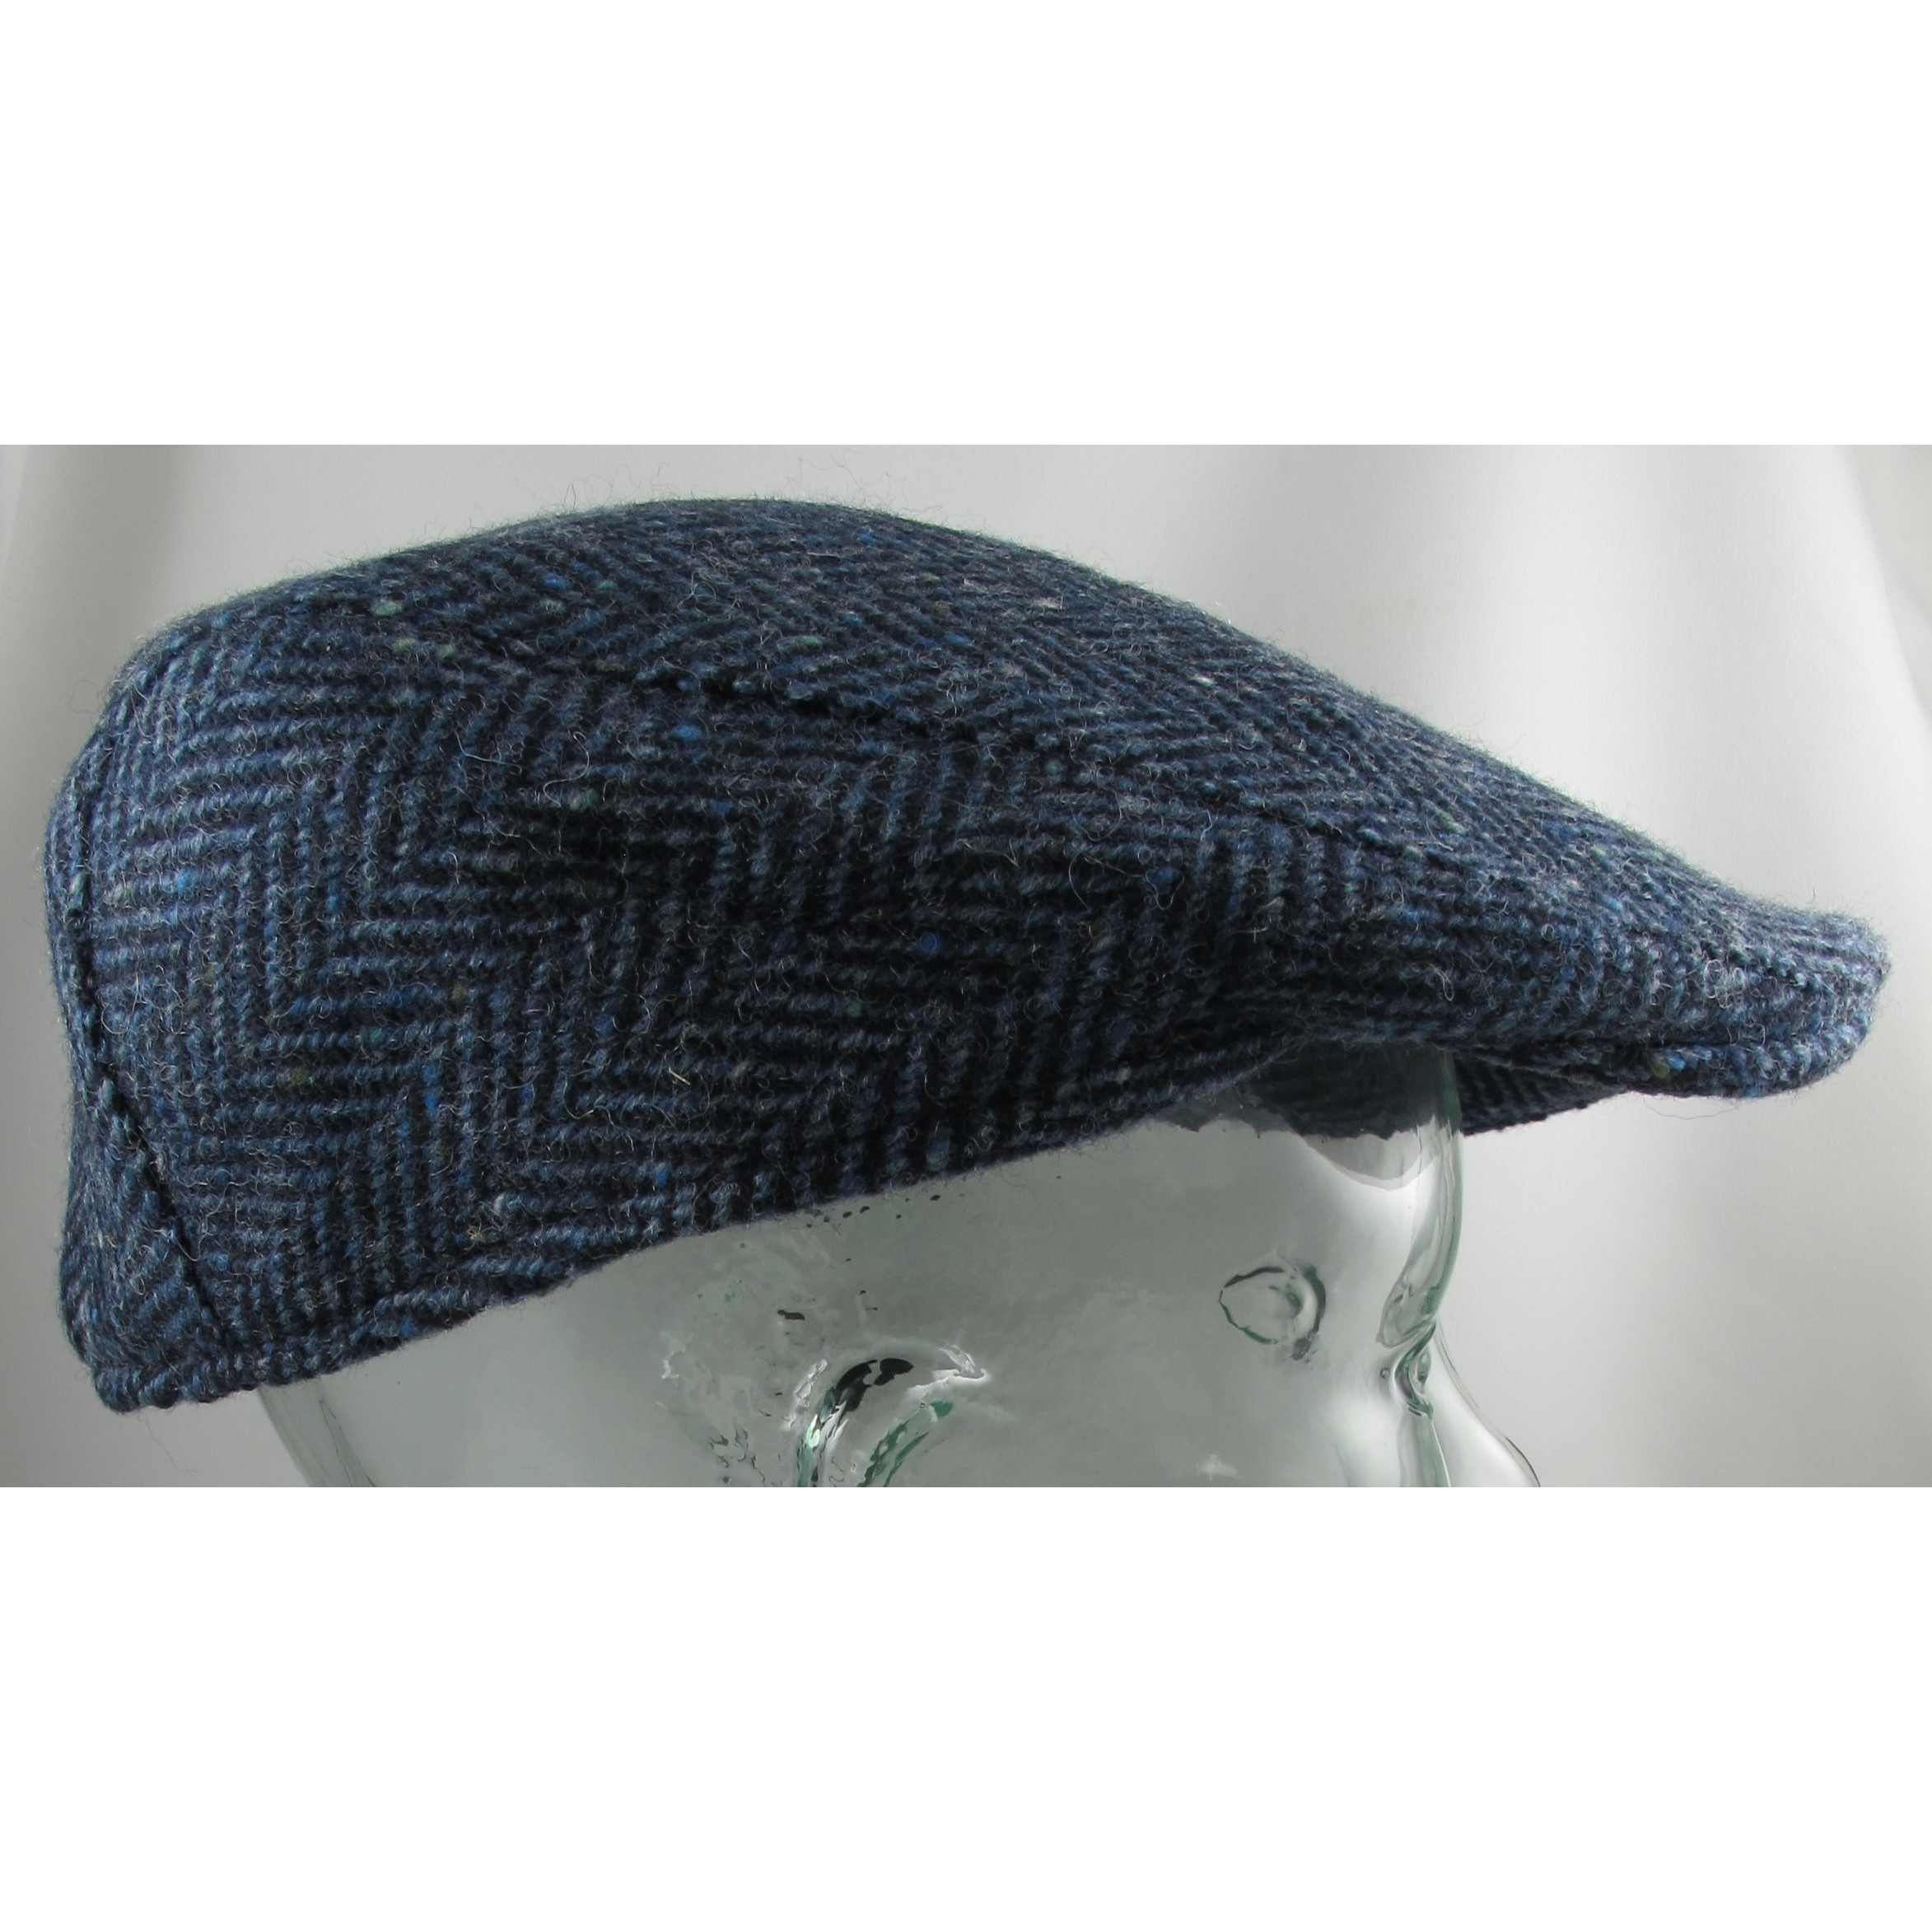 Hanna Hats Navy and Blue Herringbone Touring Cap Clothing Caps ... a48e9beac81